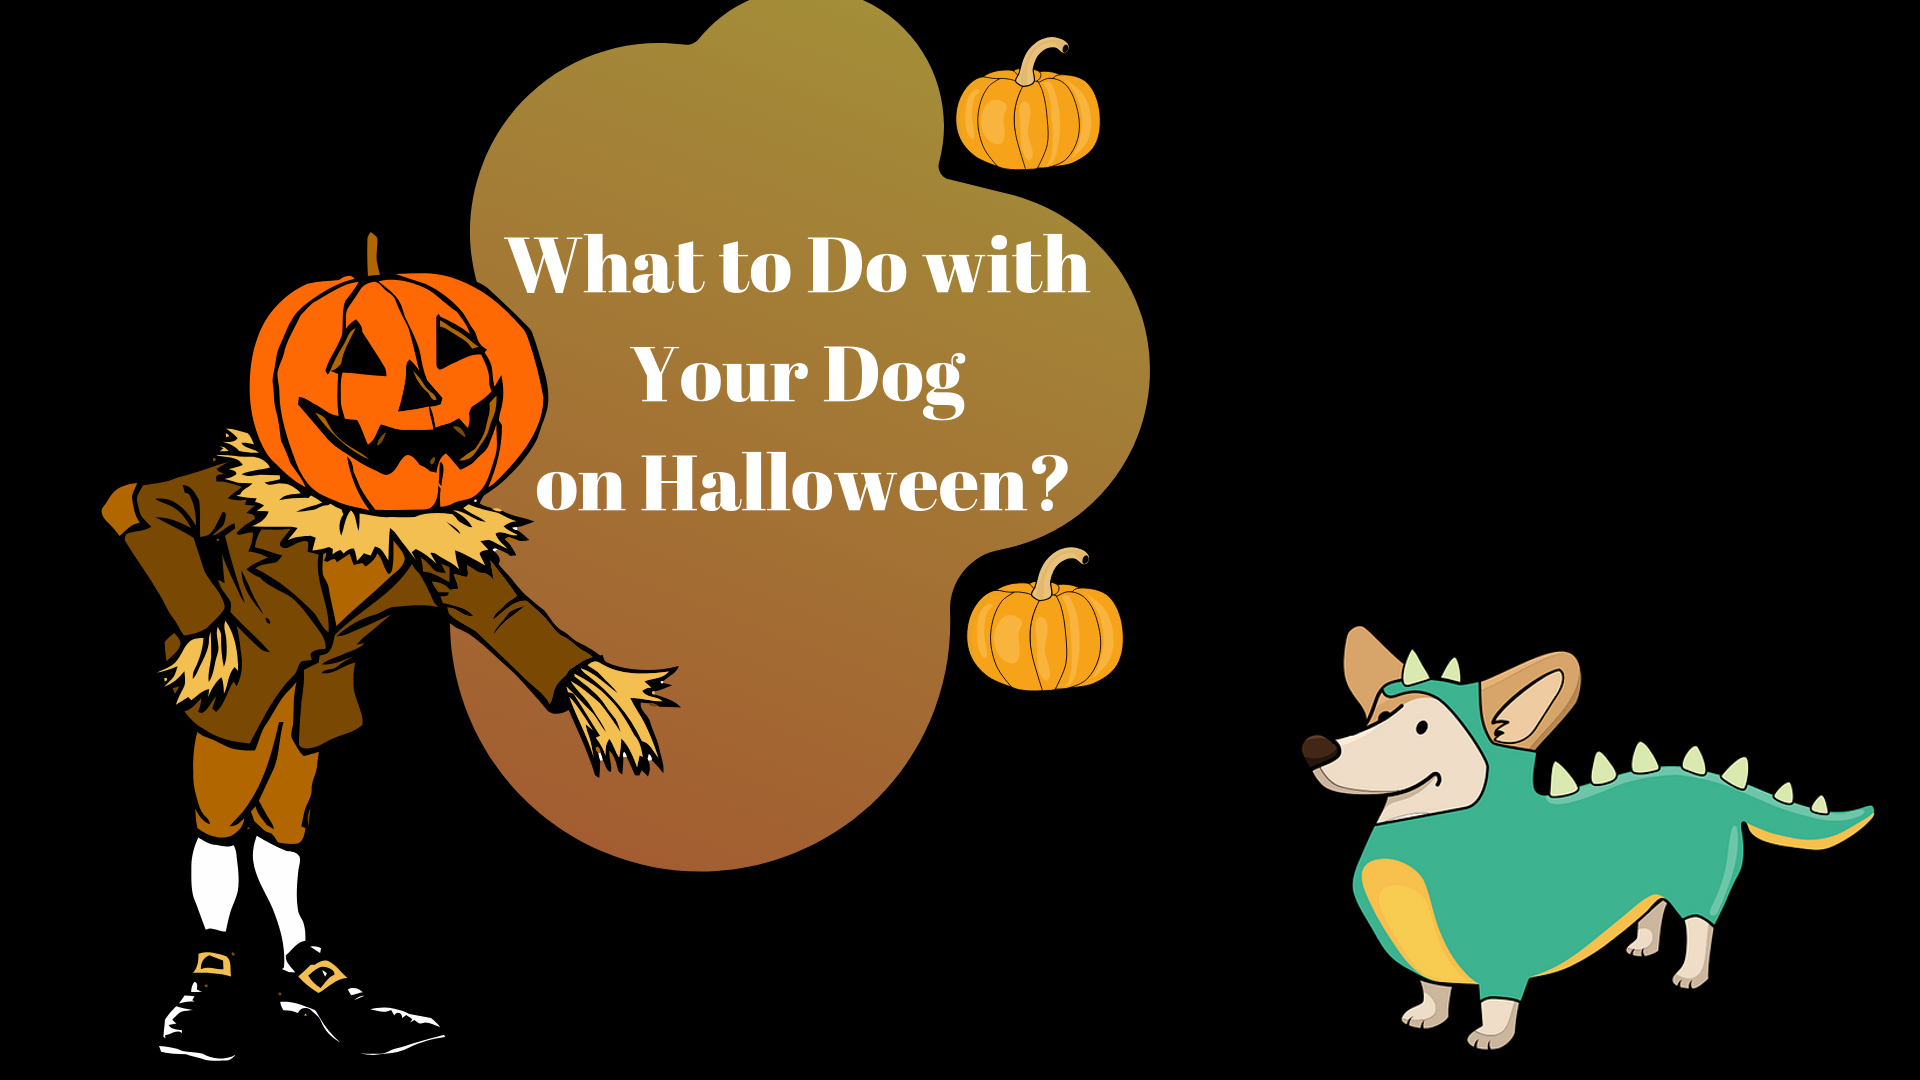 What to Do with Your Dog on Halloween